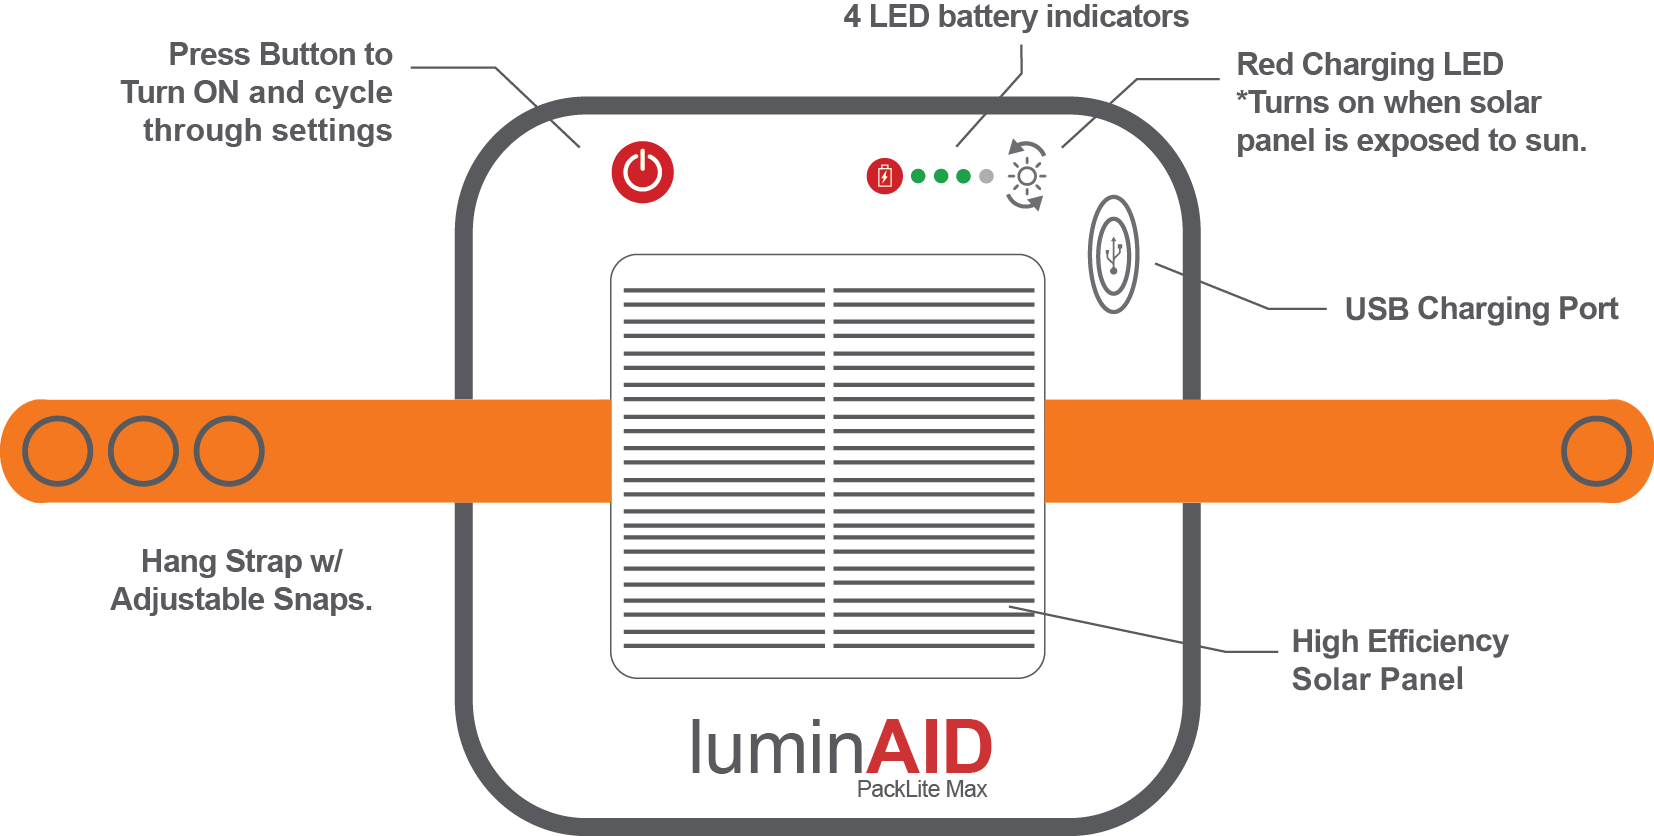 LuminAID Diagram